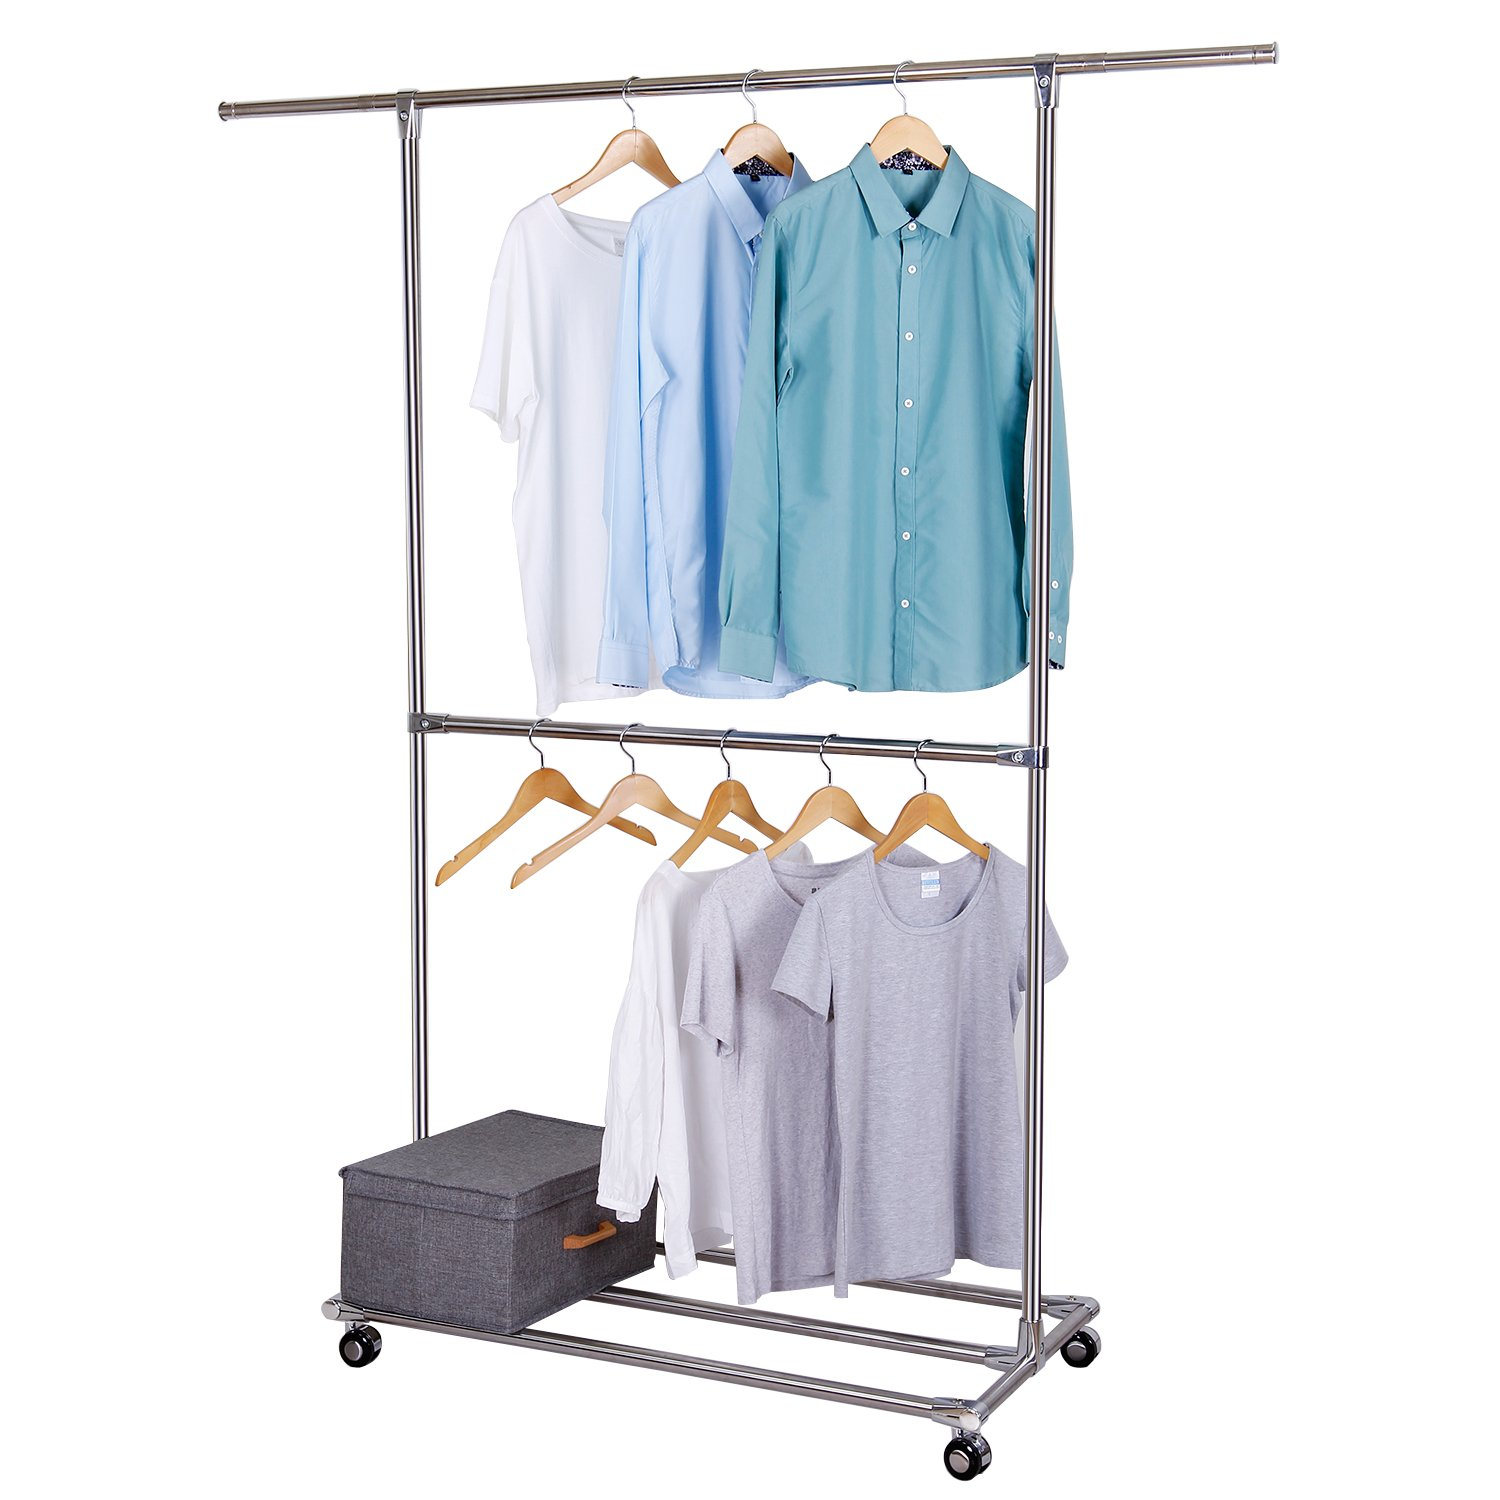 clothes display iron productimage retail stand china metal wall rack tbfmhighquuo shop garment shelf hanging